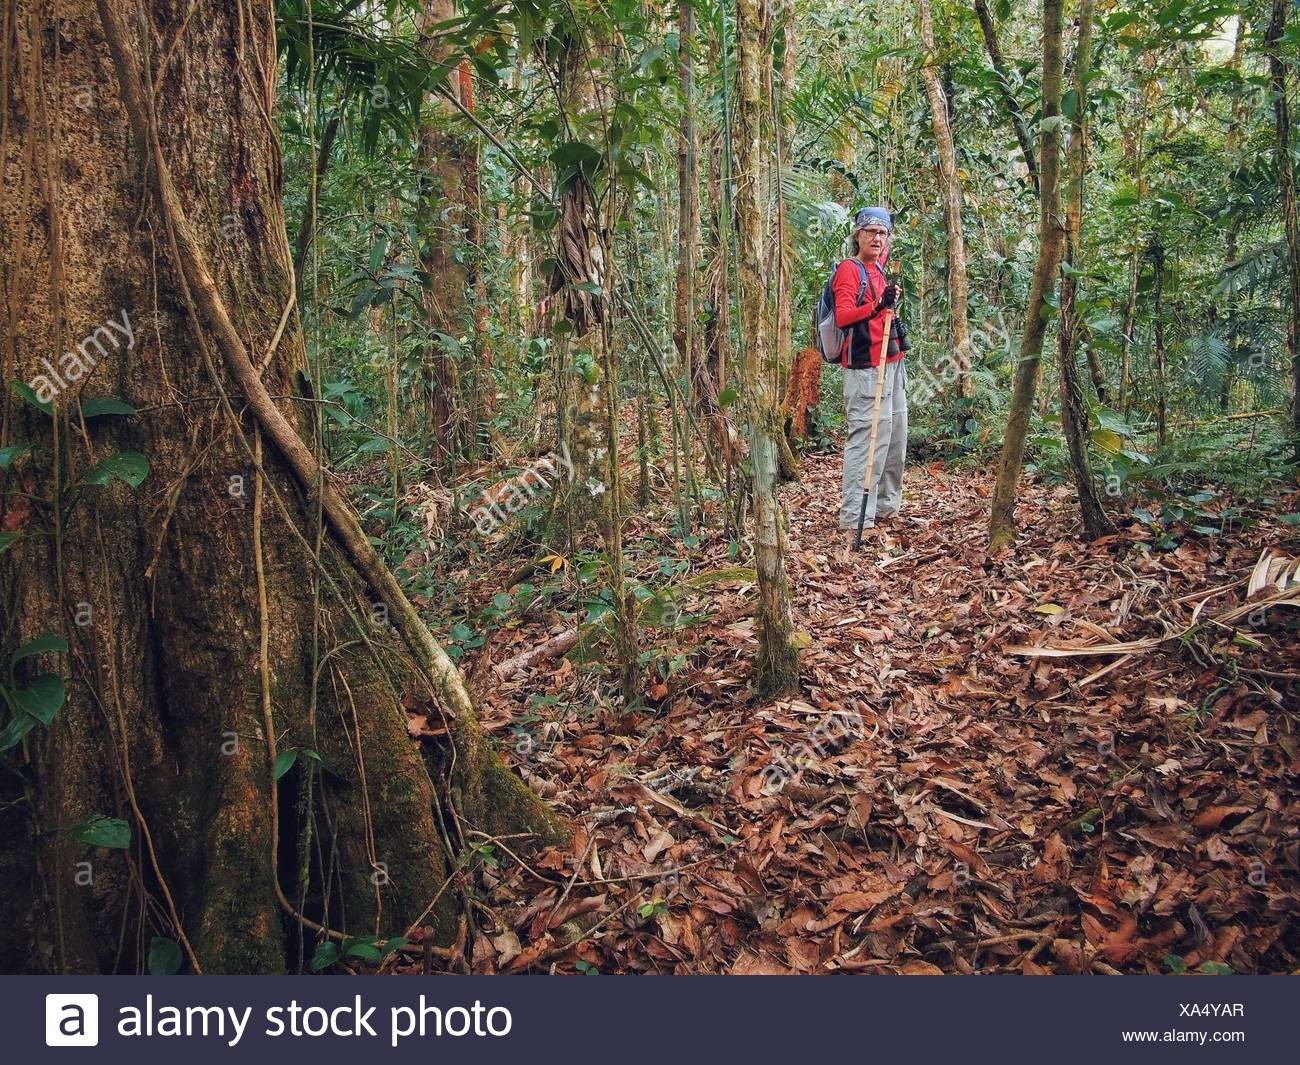 Portrait Of Senior Woman Hiking In Forest - Stock Image